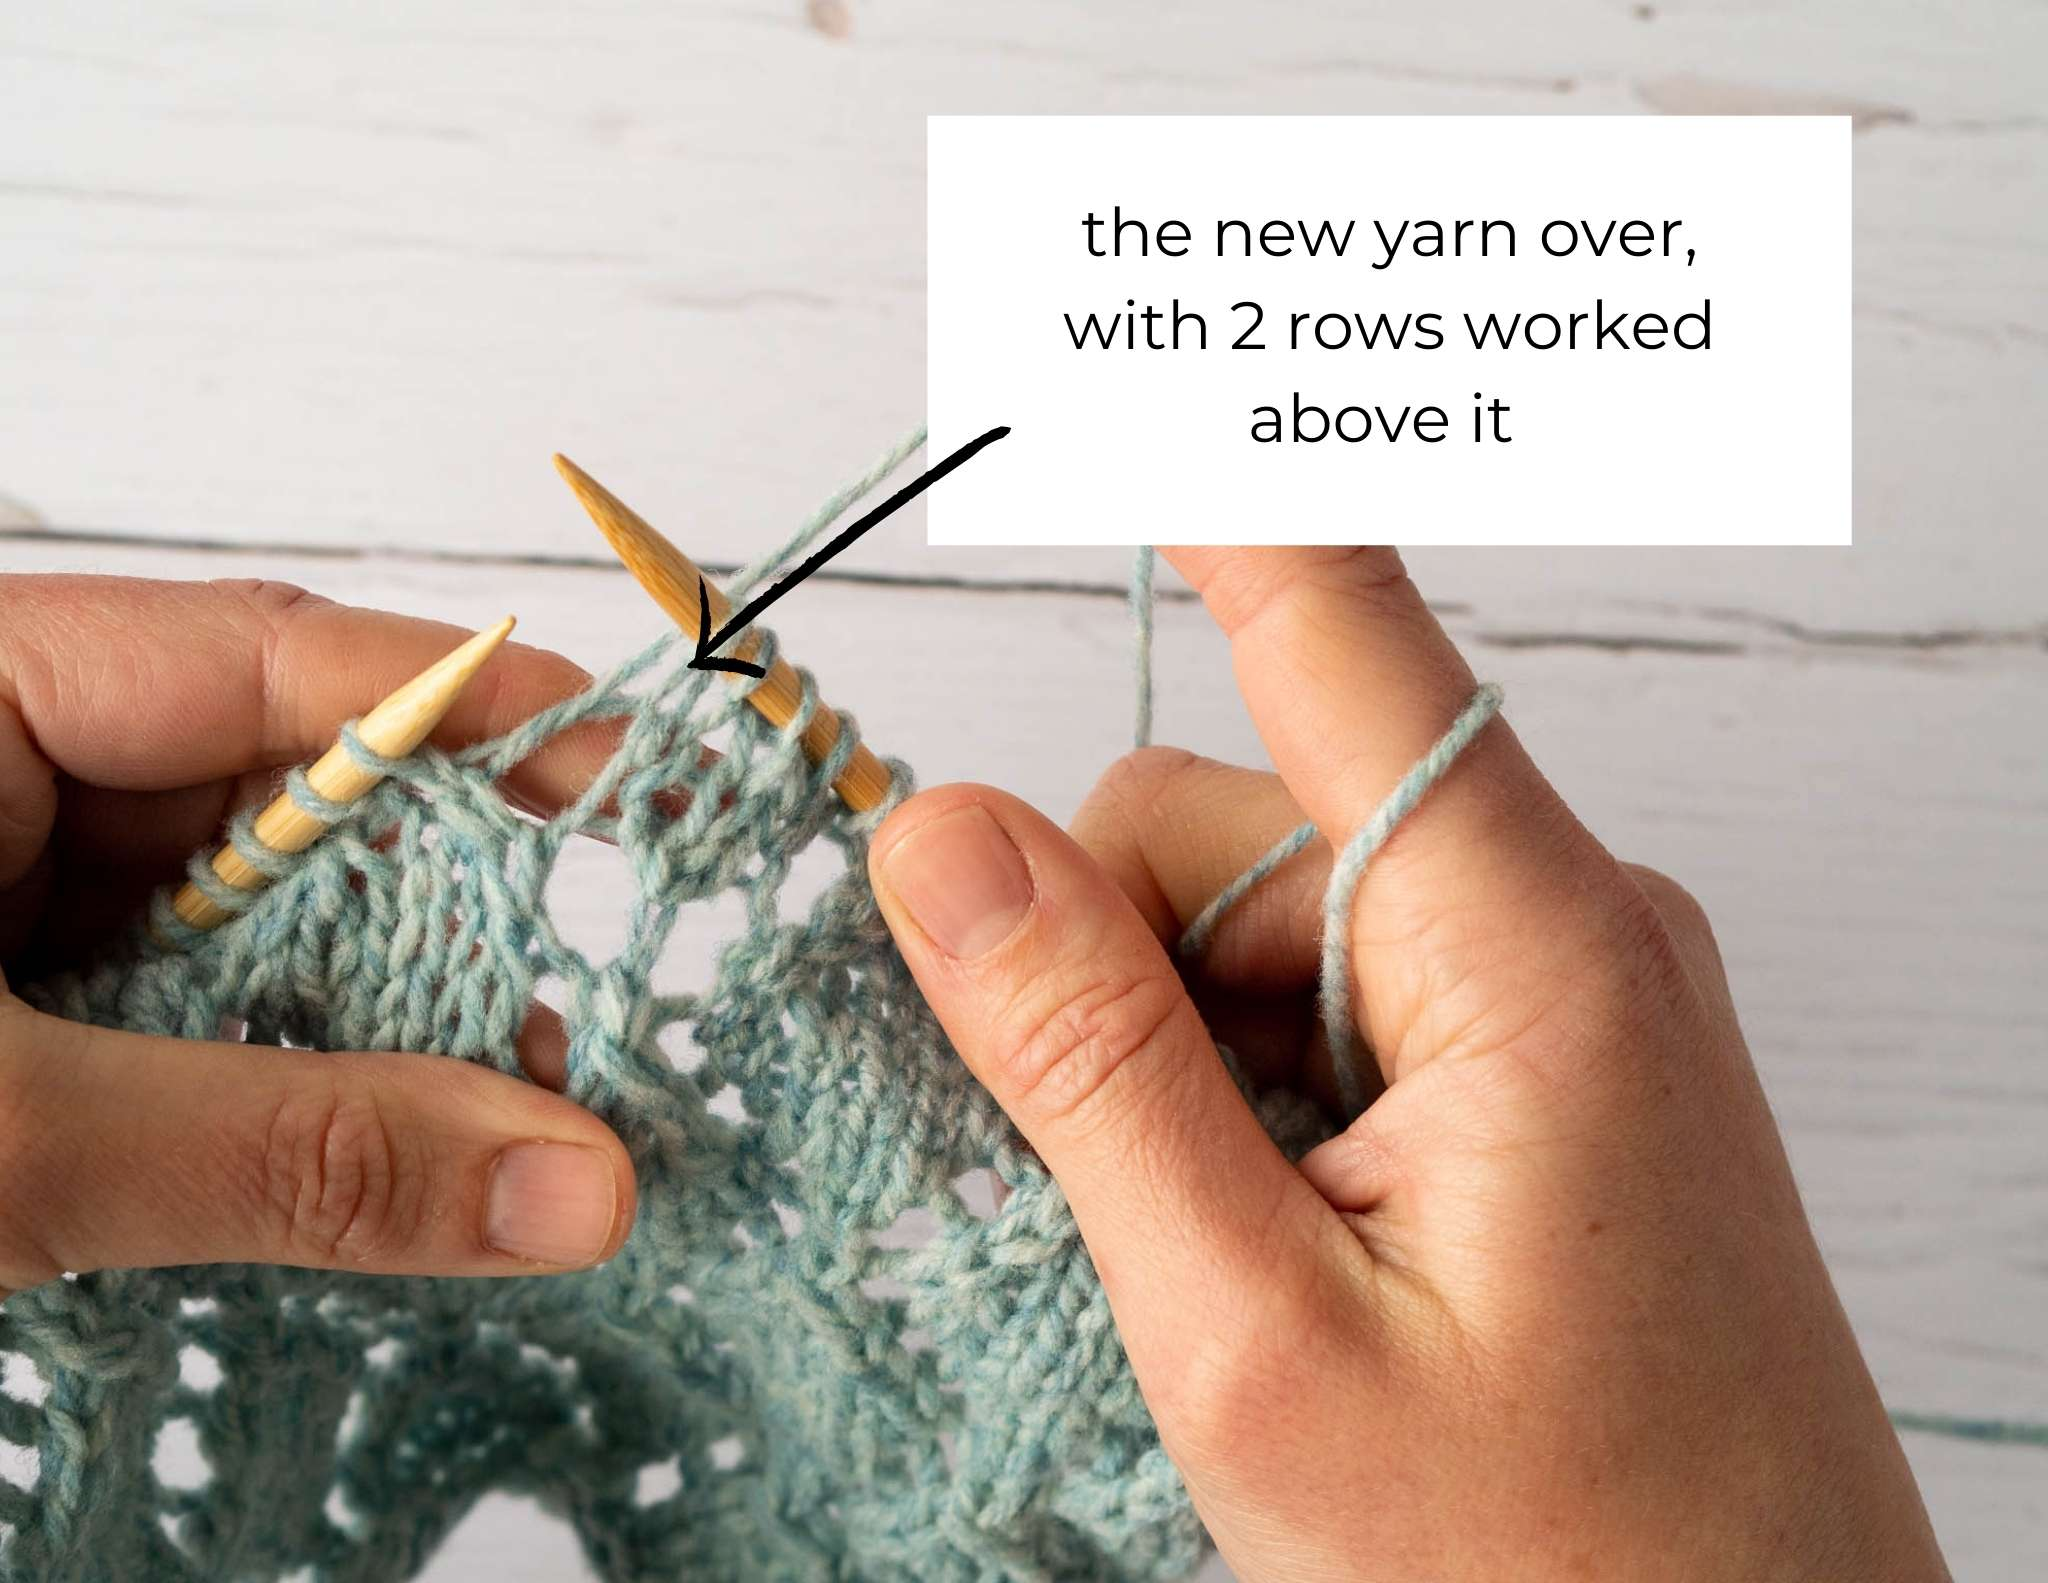 """photo showing the picked up yarn over with the text: """"the new yarn over with 2 rows worked above it"""""""